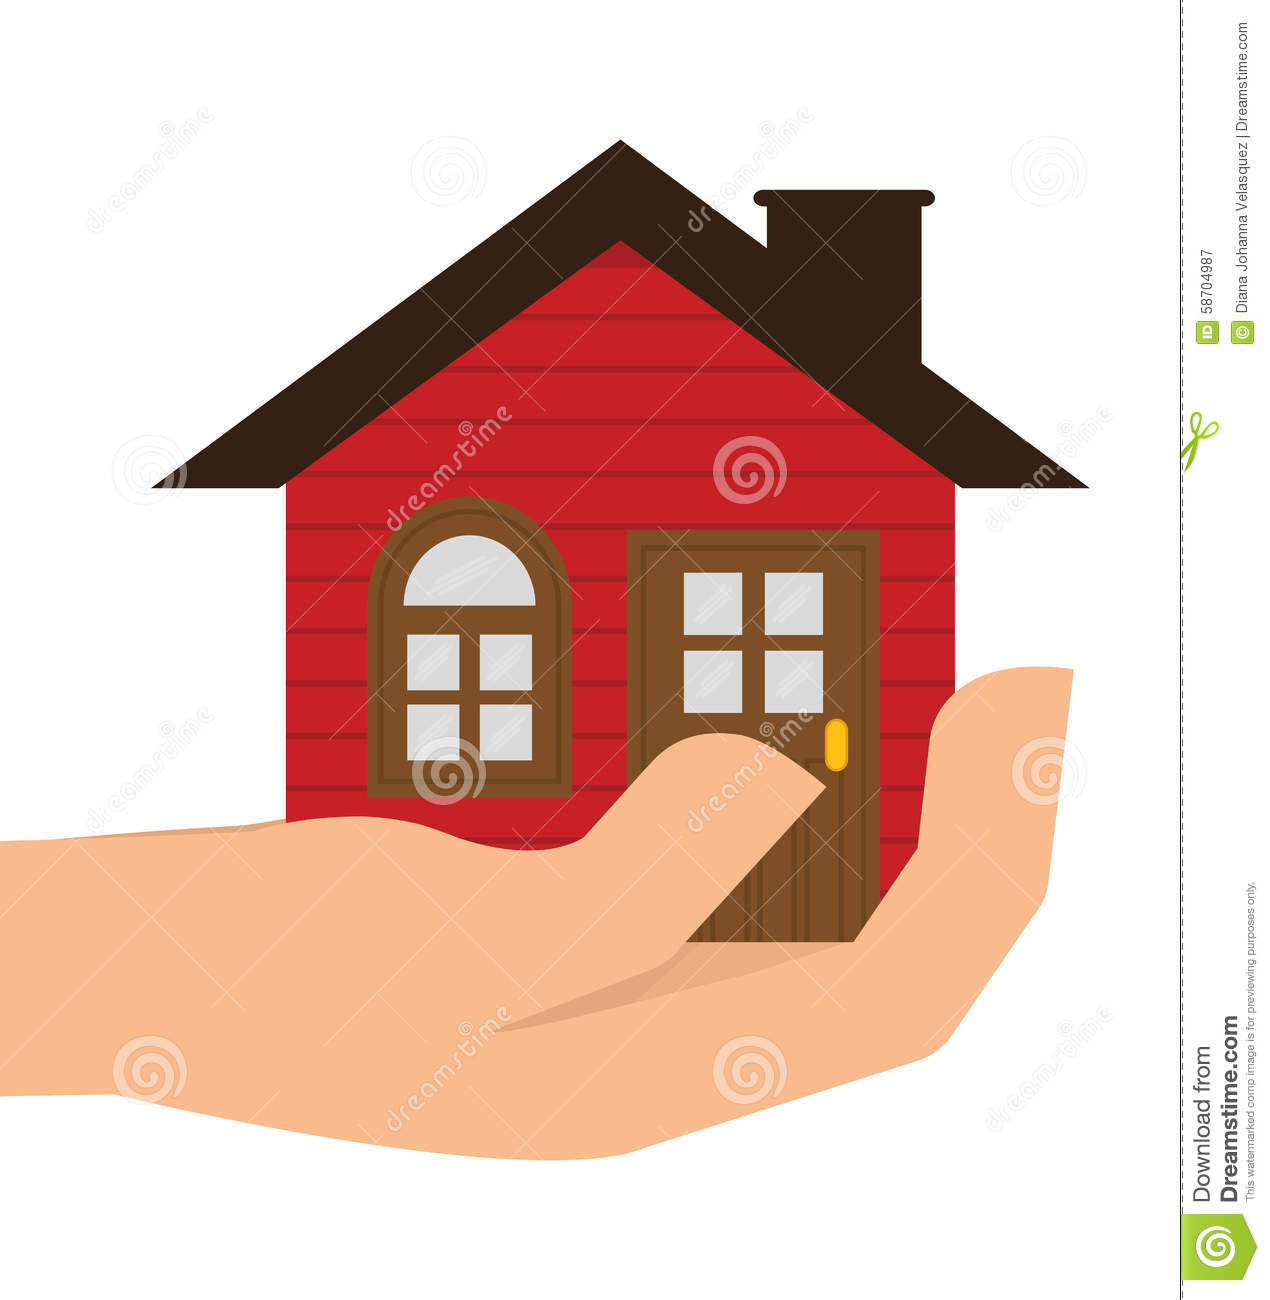 Home design stock vector image 58704987 for Digital house design